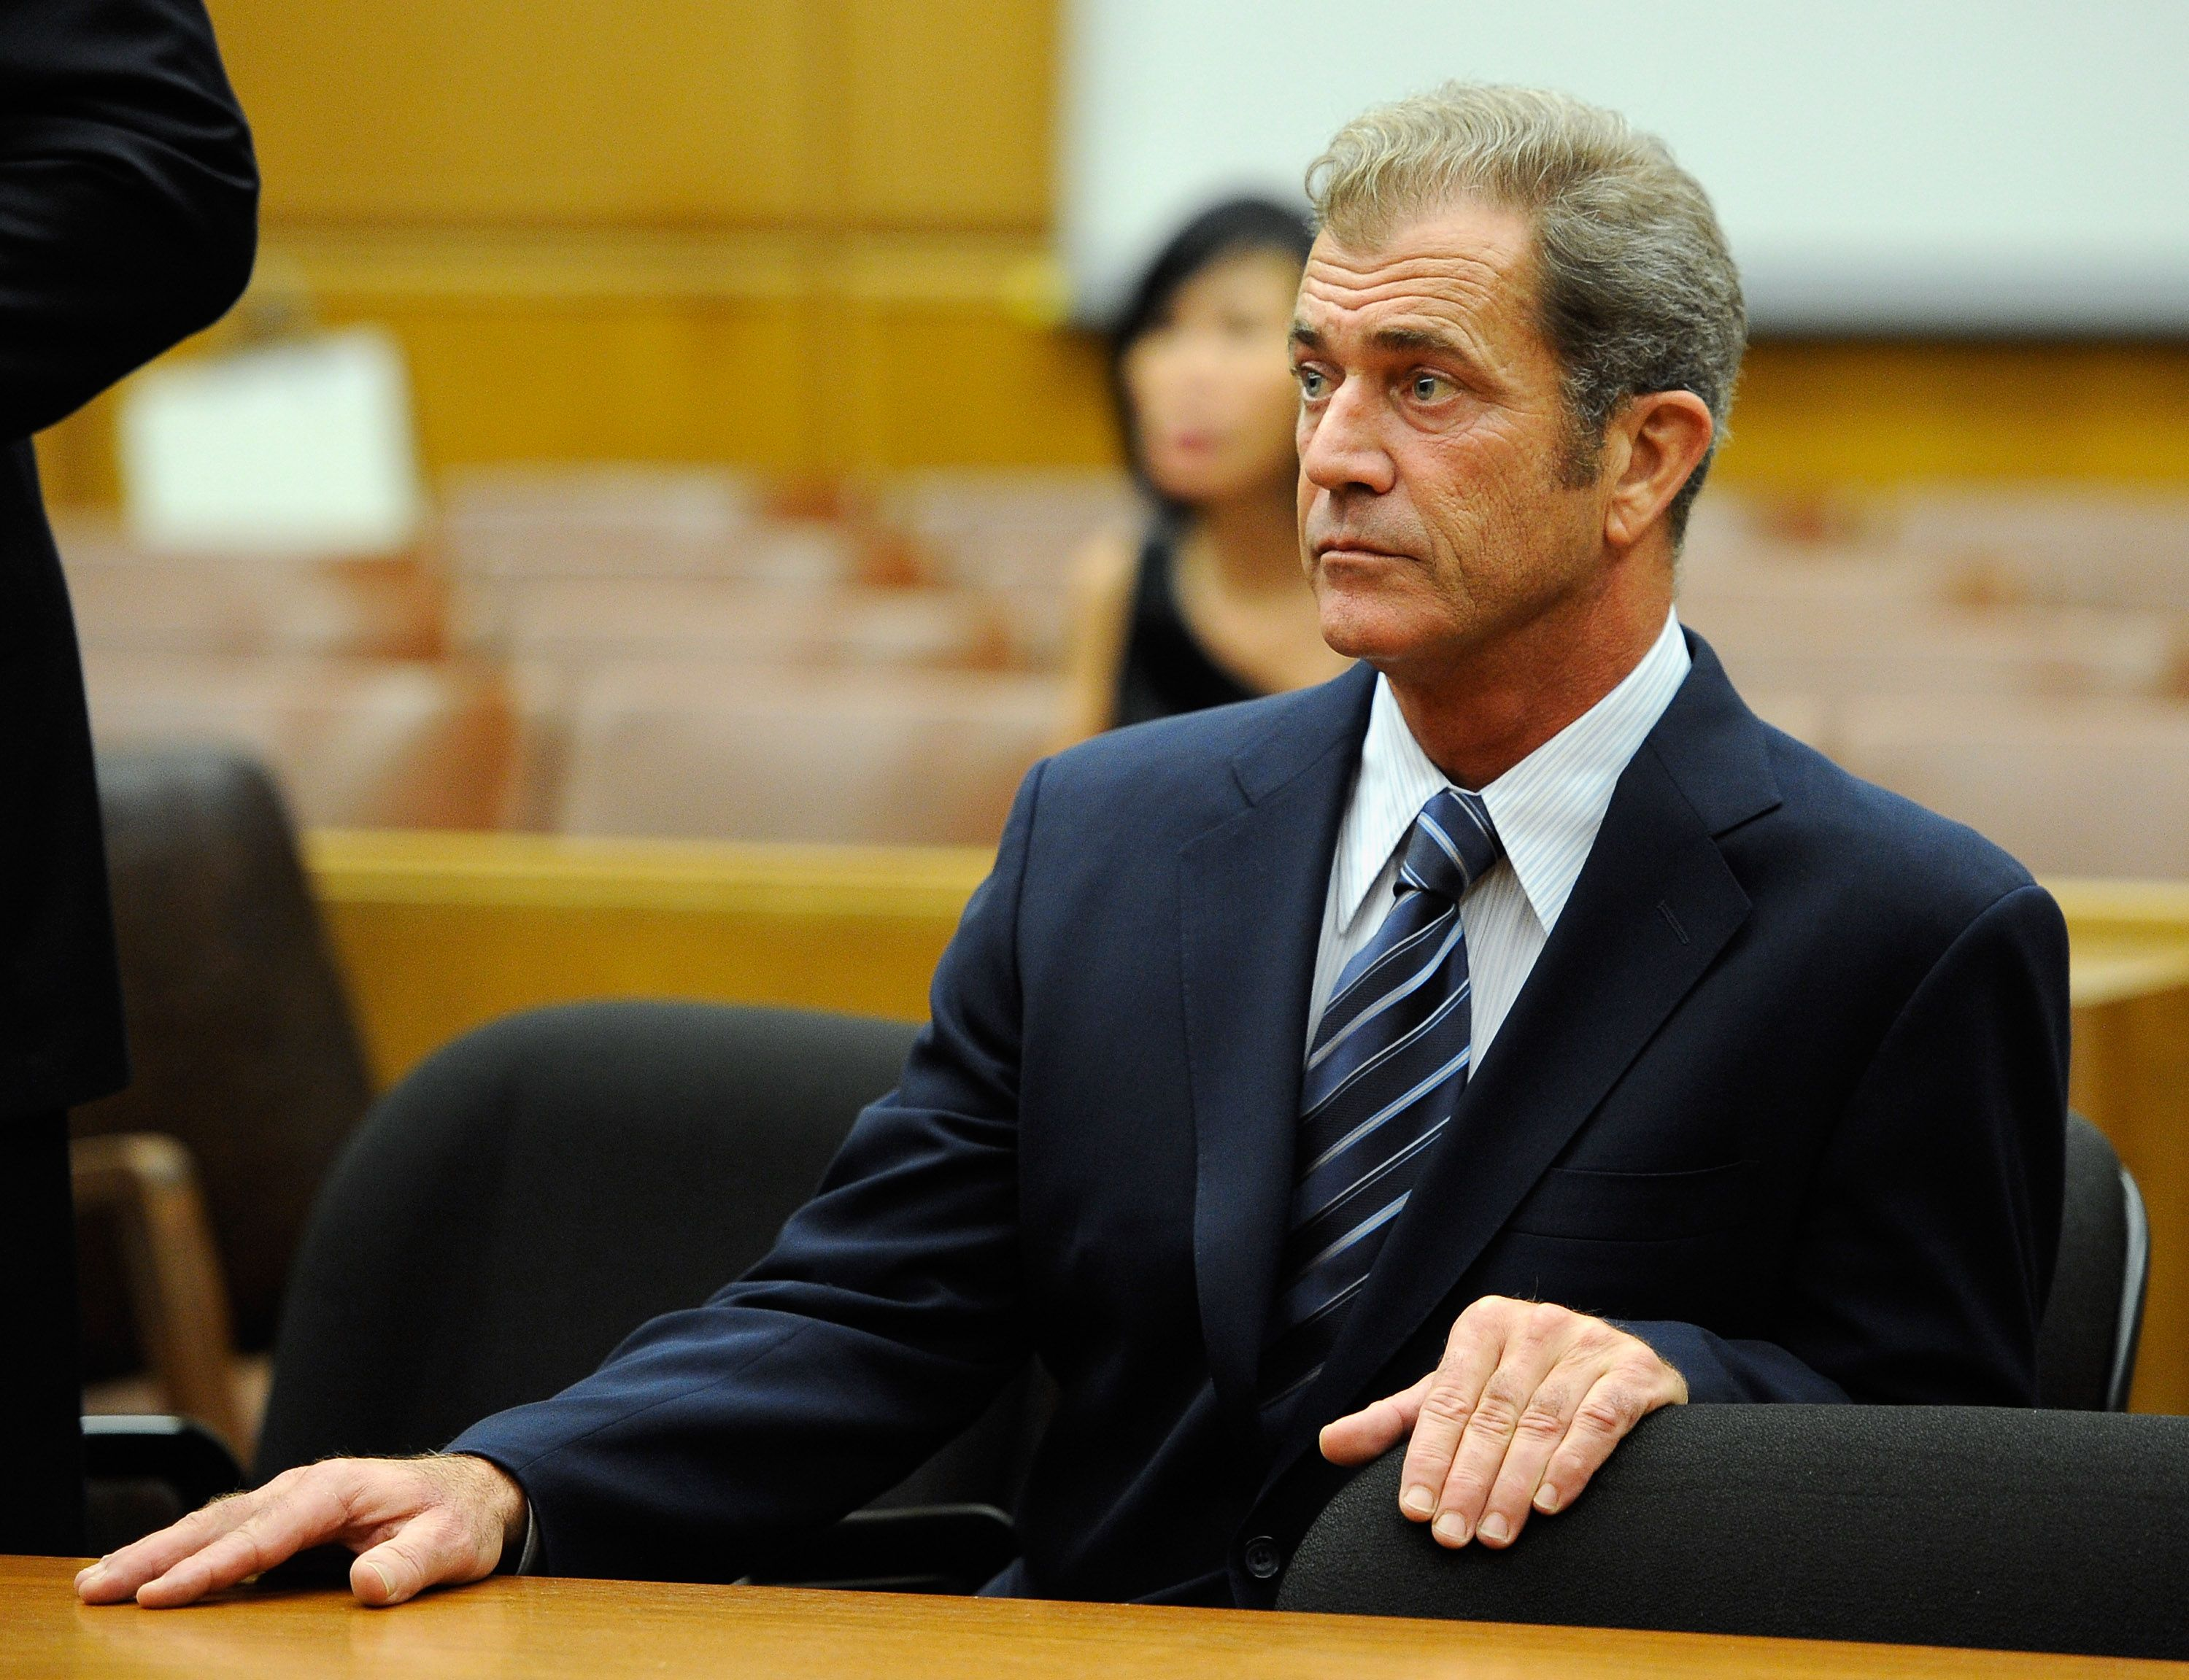 Mel Gibson at a hearing in a Los Angeles County Courthouse to finalize financial issues with Oksana Grigorieva in August 2011 | Source: Getty Images